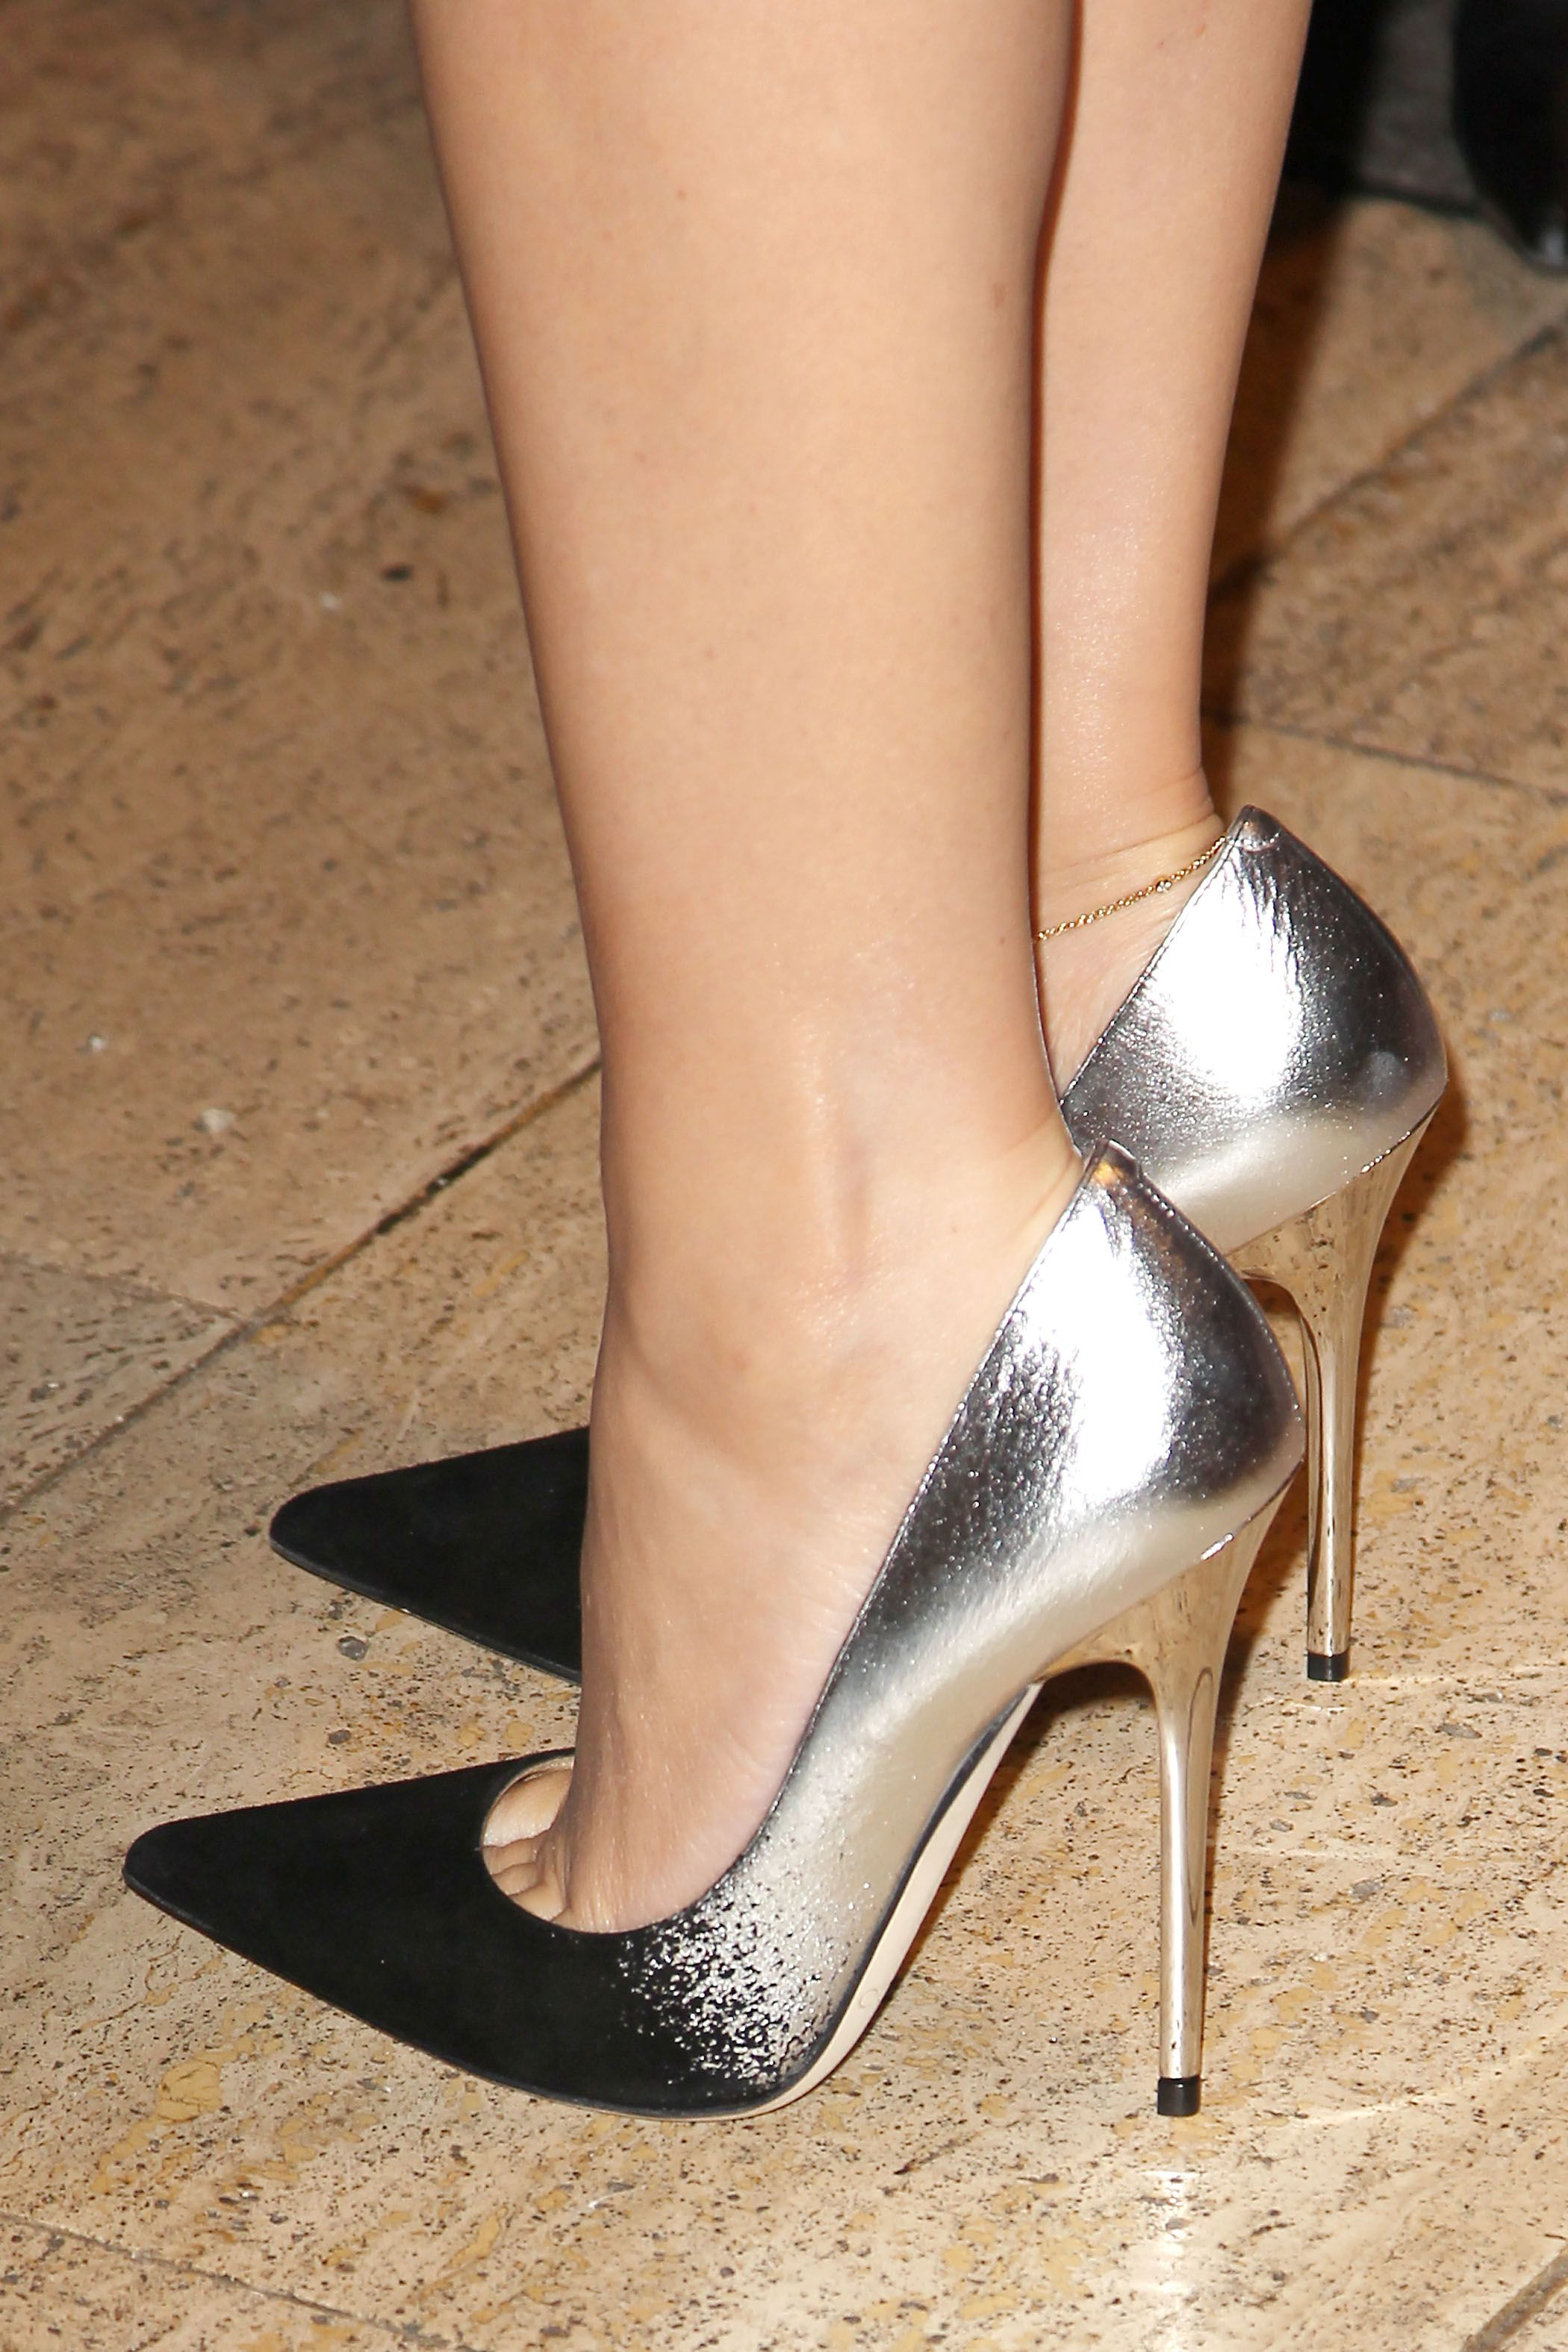 68e2777ca jimmy choo anouk pumps in black/silver on the feet of kylie minogue.  #shoeporn